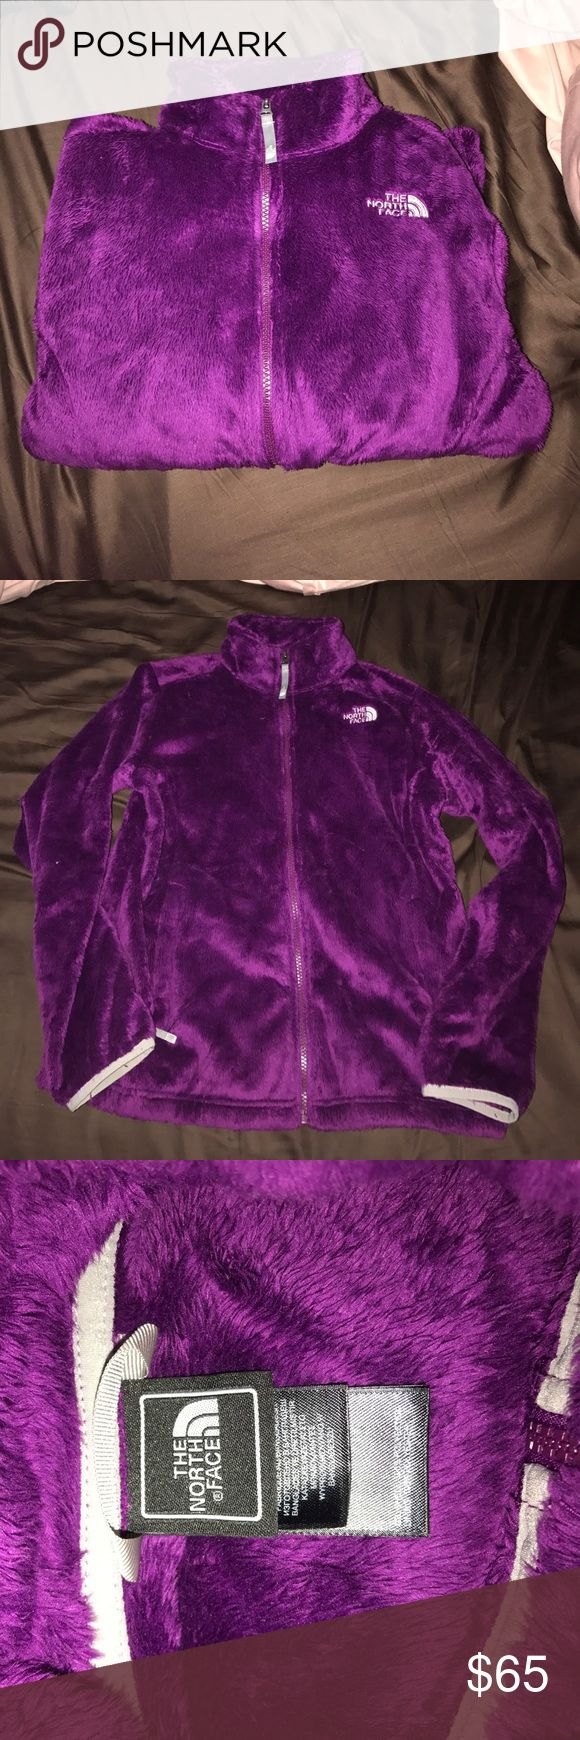 Girls North face Jacket Soft and cozy purple jacket! only used several times  fuzzy and pretty lightweight!  in practically brand new condition!! The North Face Jackets & Coats